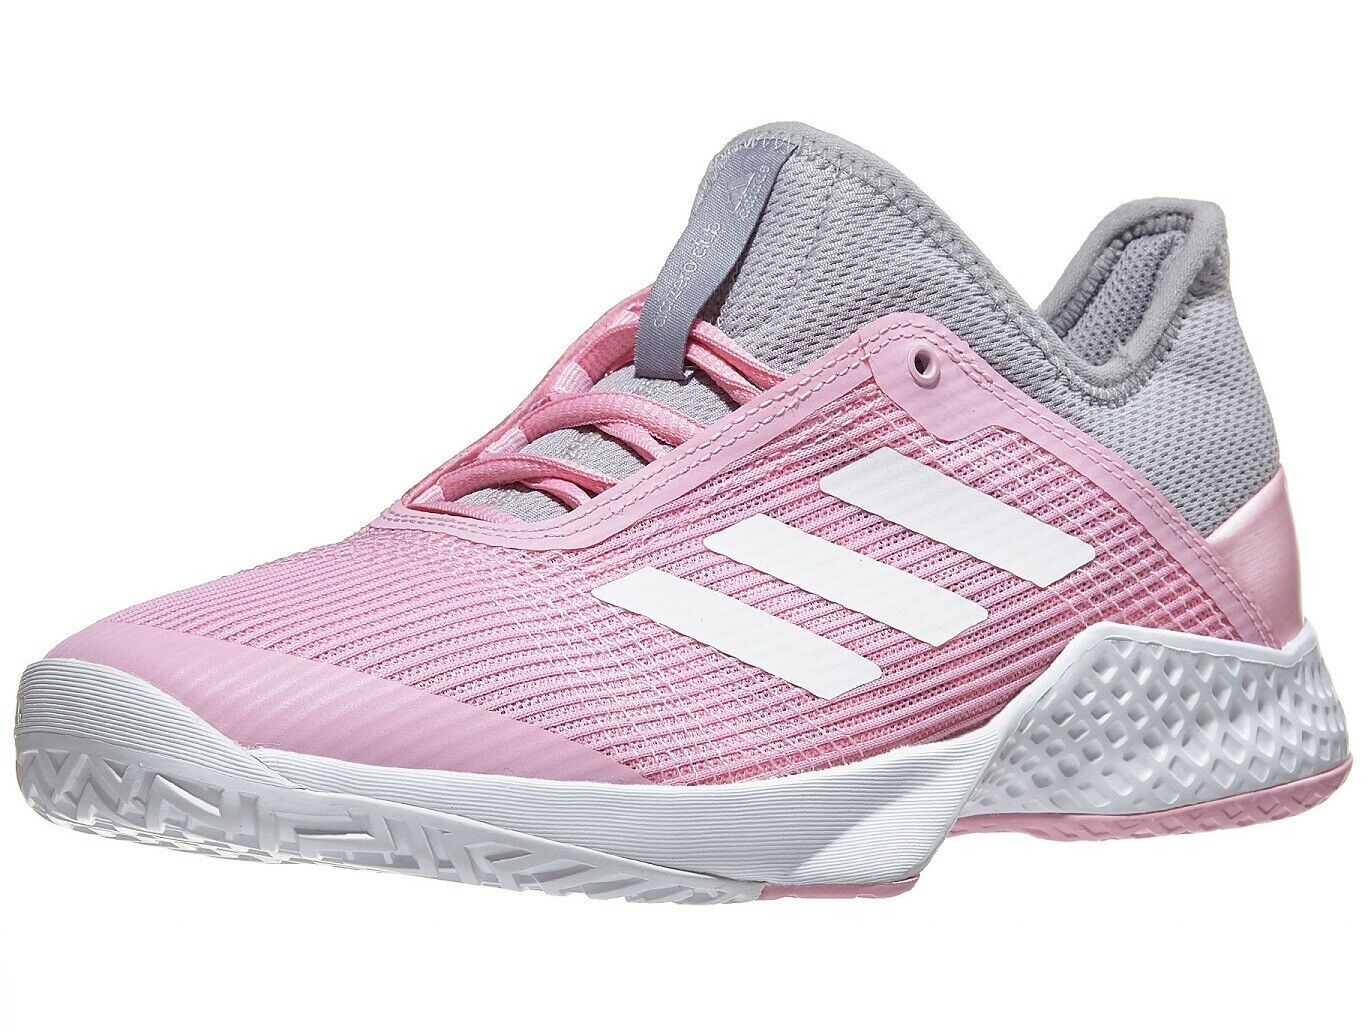 WOMEN'S ADIDAS ADIZERO CLUB TENNIS SHOES (LGRANITE/WHT/TRUPINK) CG6363